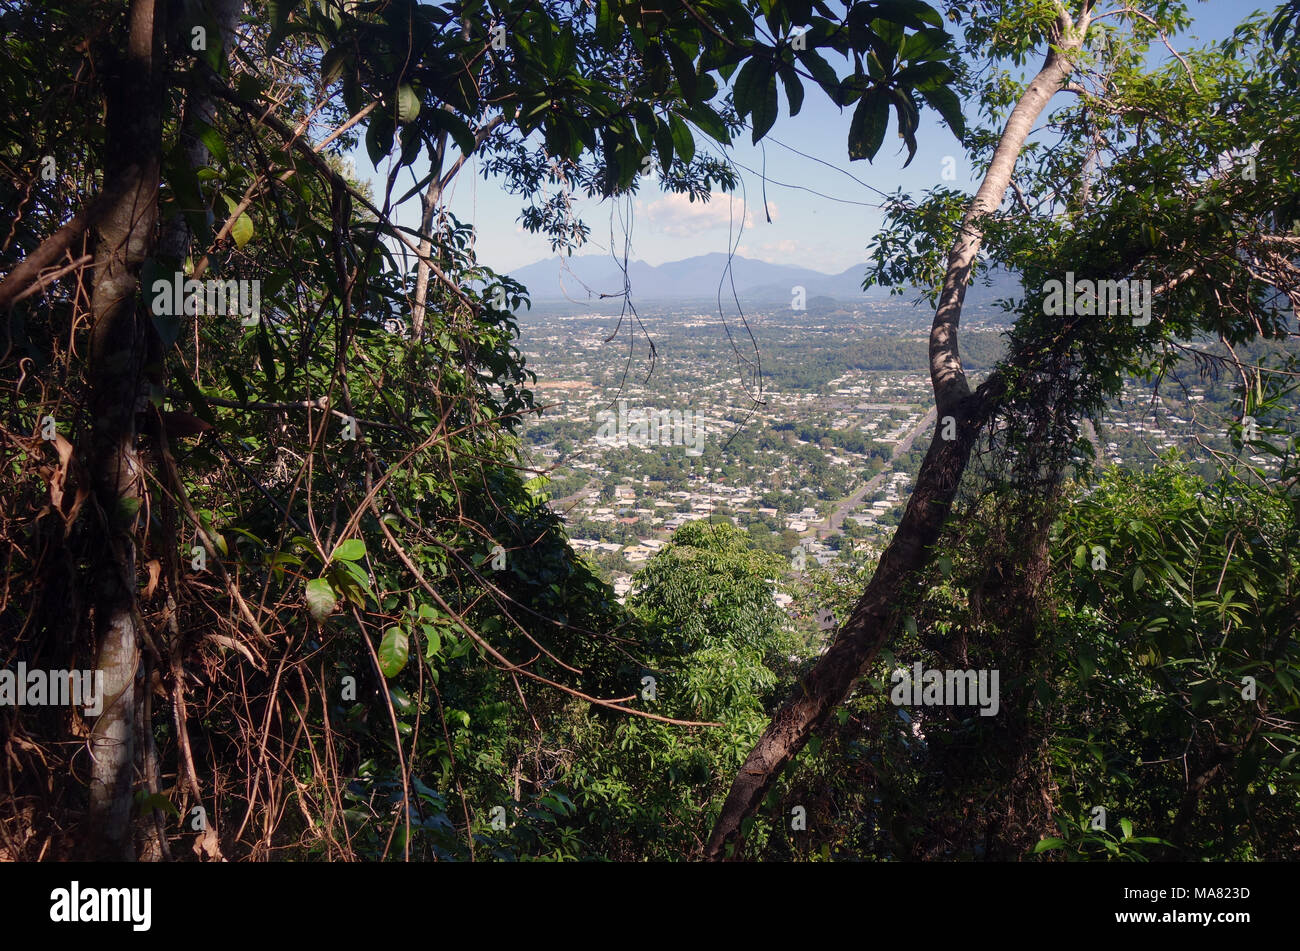 Glimpses of Cairns suburbs through rainforest along Green Arrow walking track, Mt Whitfield, Cairns, Queensland, Australia. No PR - Stock Image